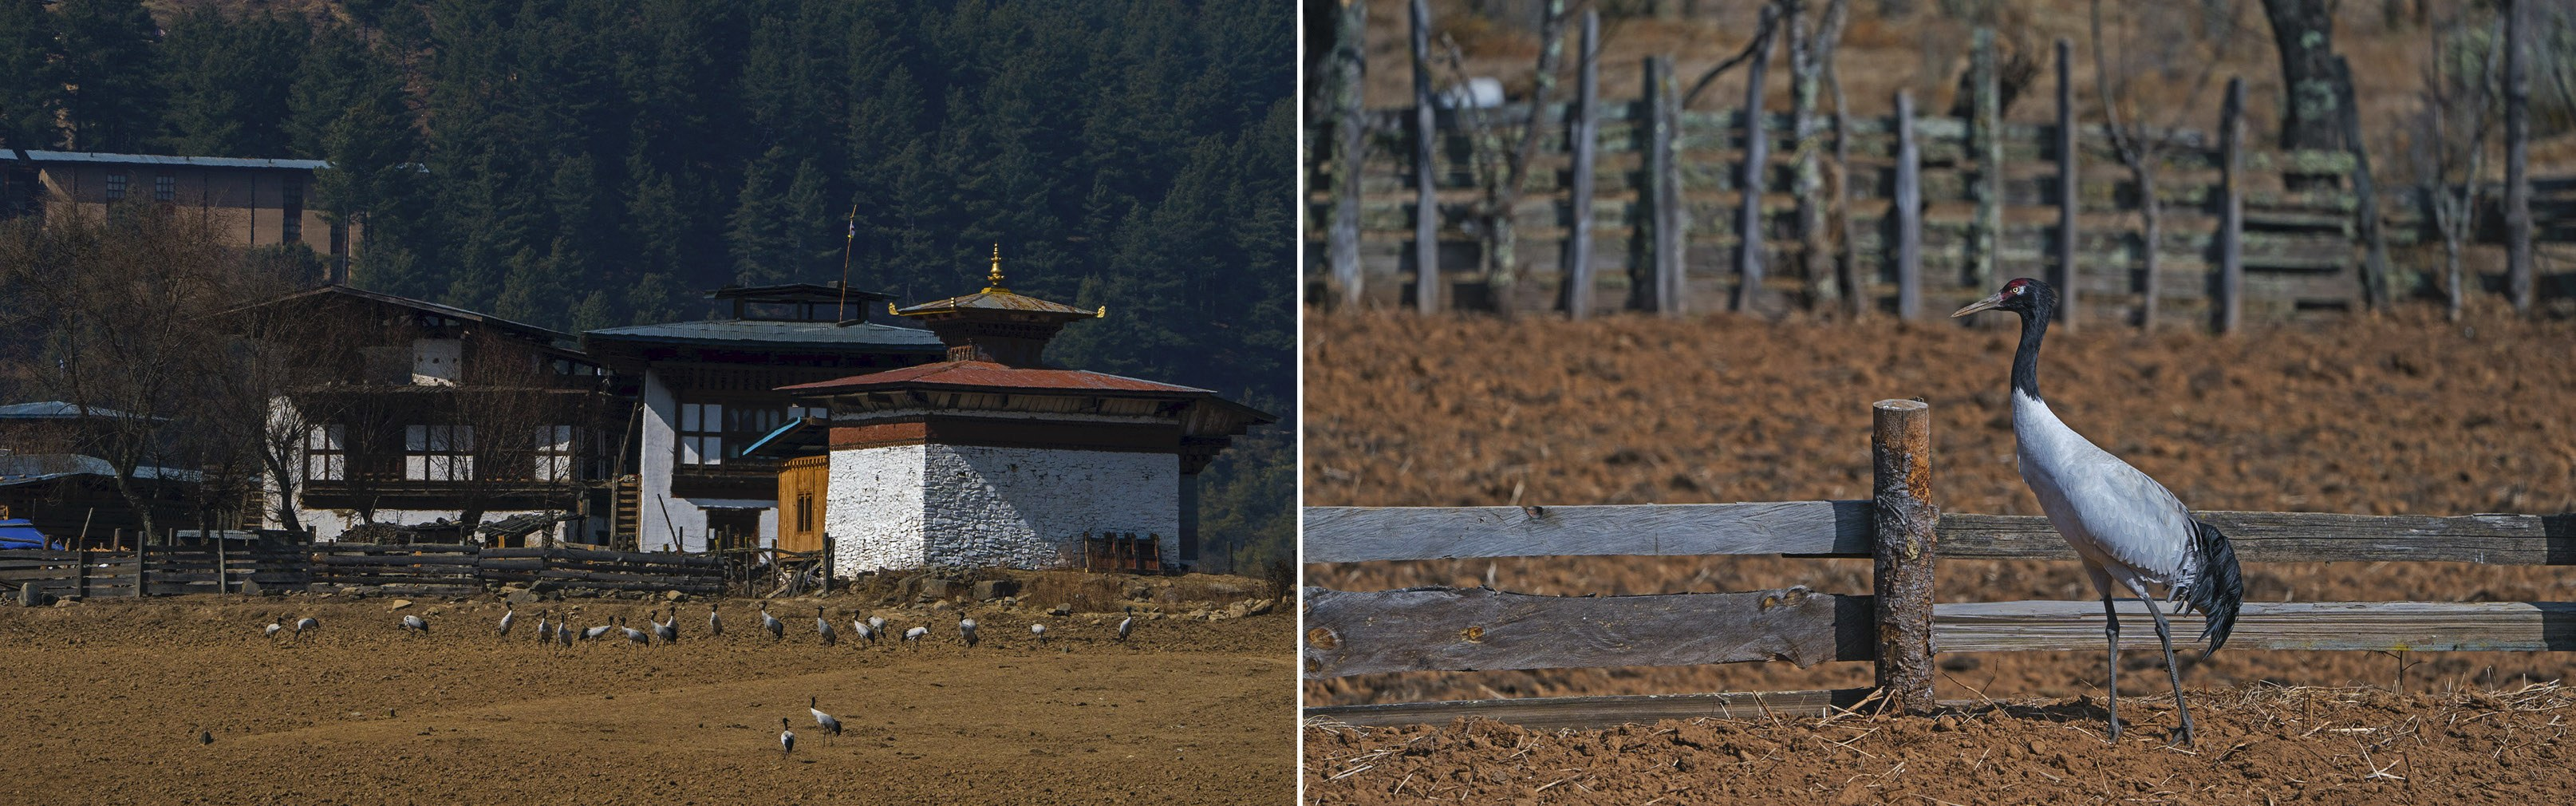 By end-October, the cranes start to arrive in the Phobjikha valley of Bhutan, where they have something of a celebrity status. One of the locations where the birds take residence is near the Gangteng Buddhist Monastery, where a black-necked crane festival is held annually on Nov 11. Legend has it that the birds circle the monastery three times upon arrival, as if practising the Buddhist act of circumambulation that is observed at holy sites.